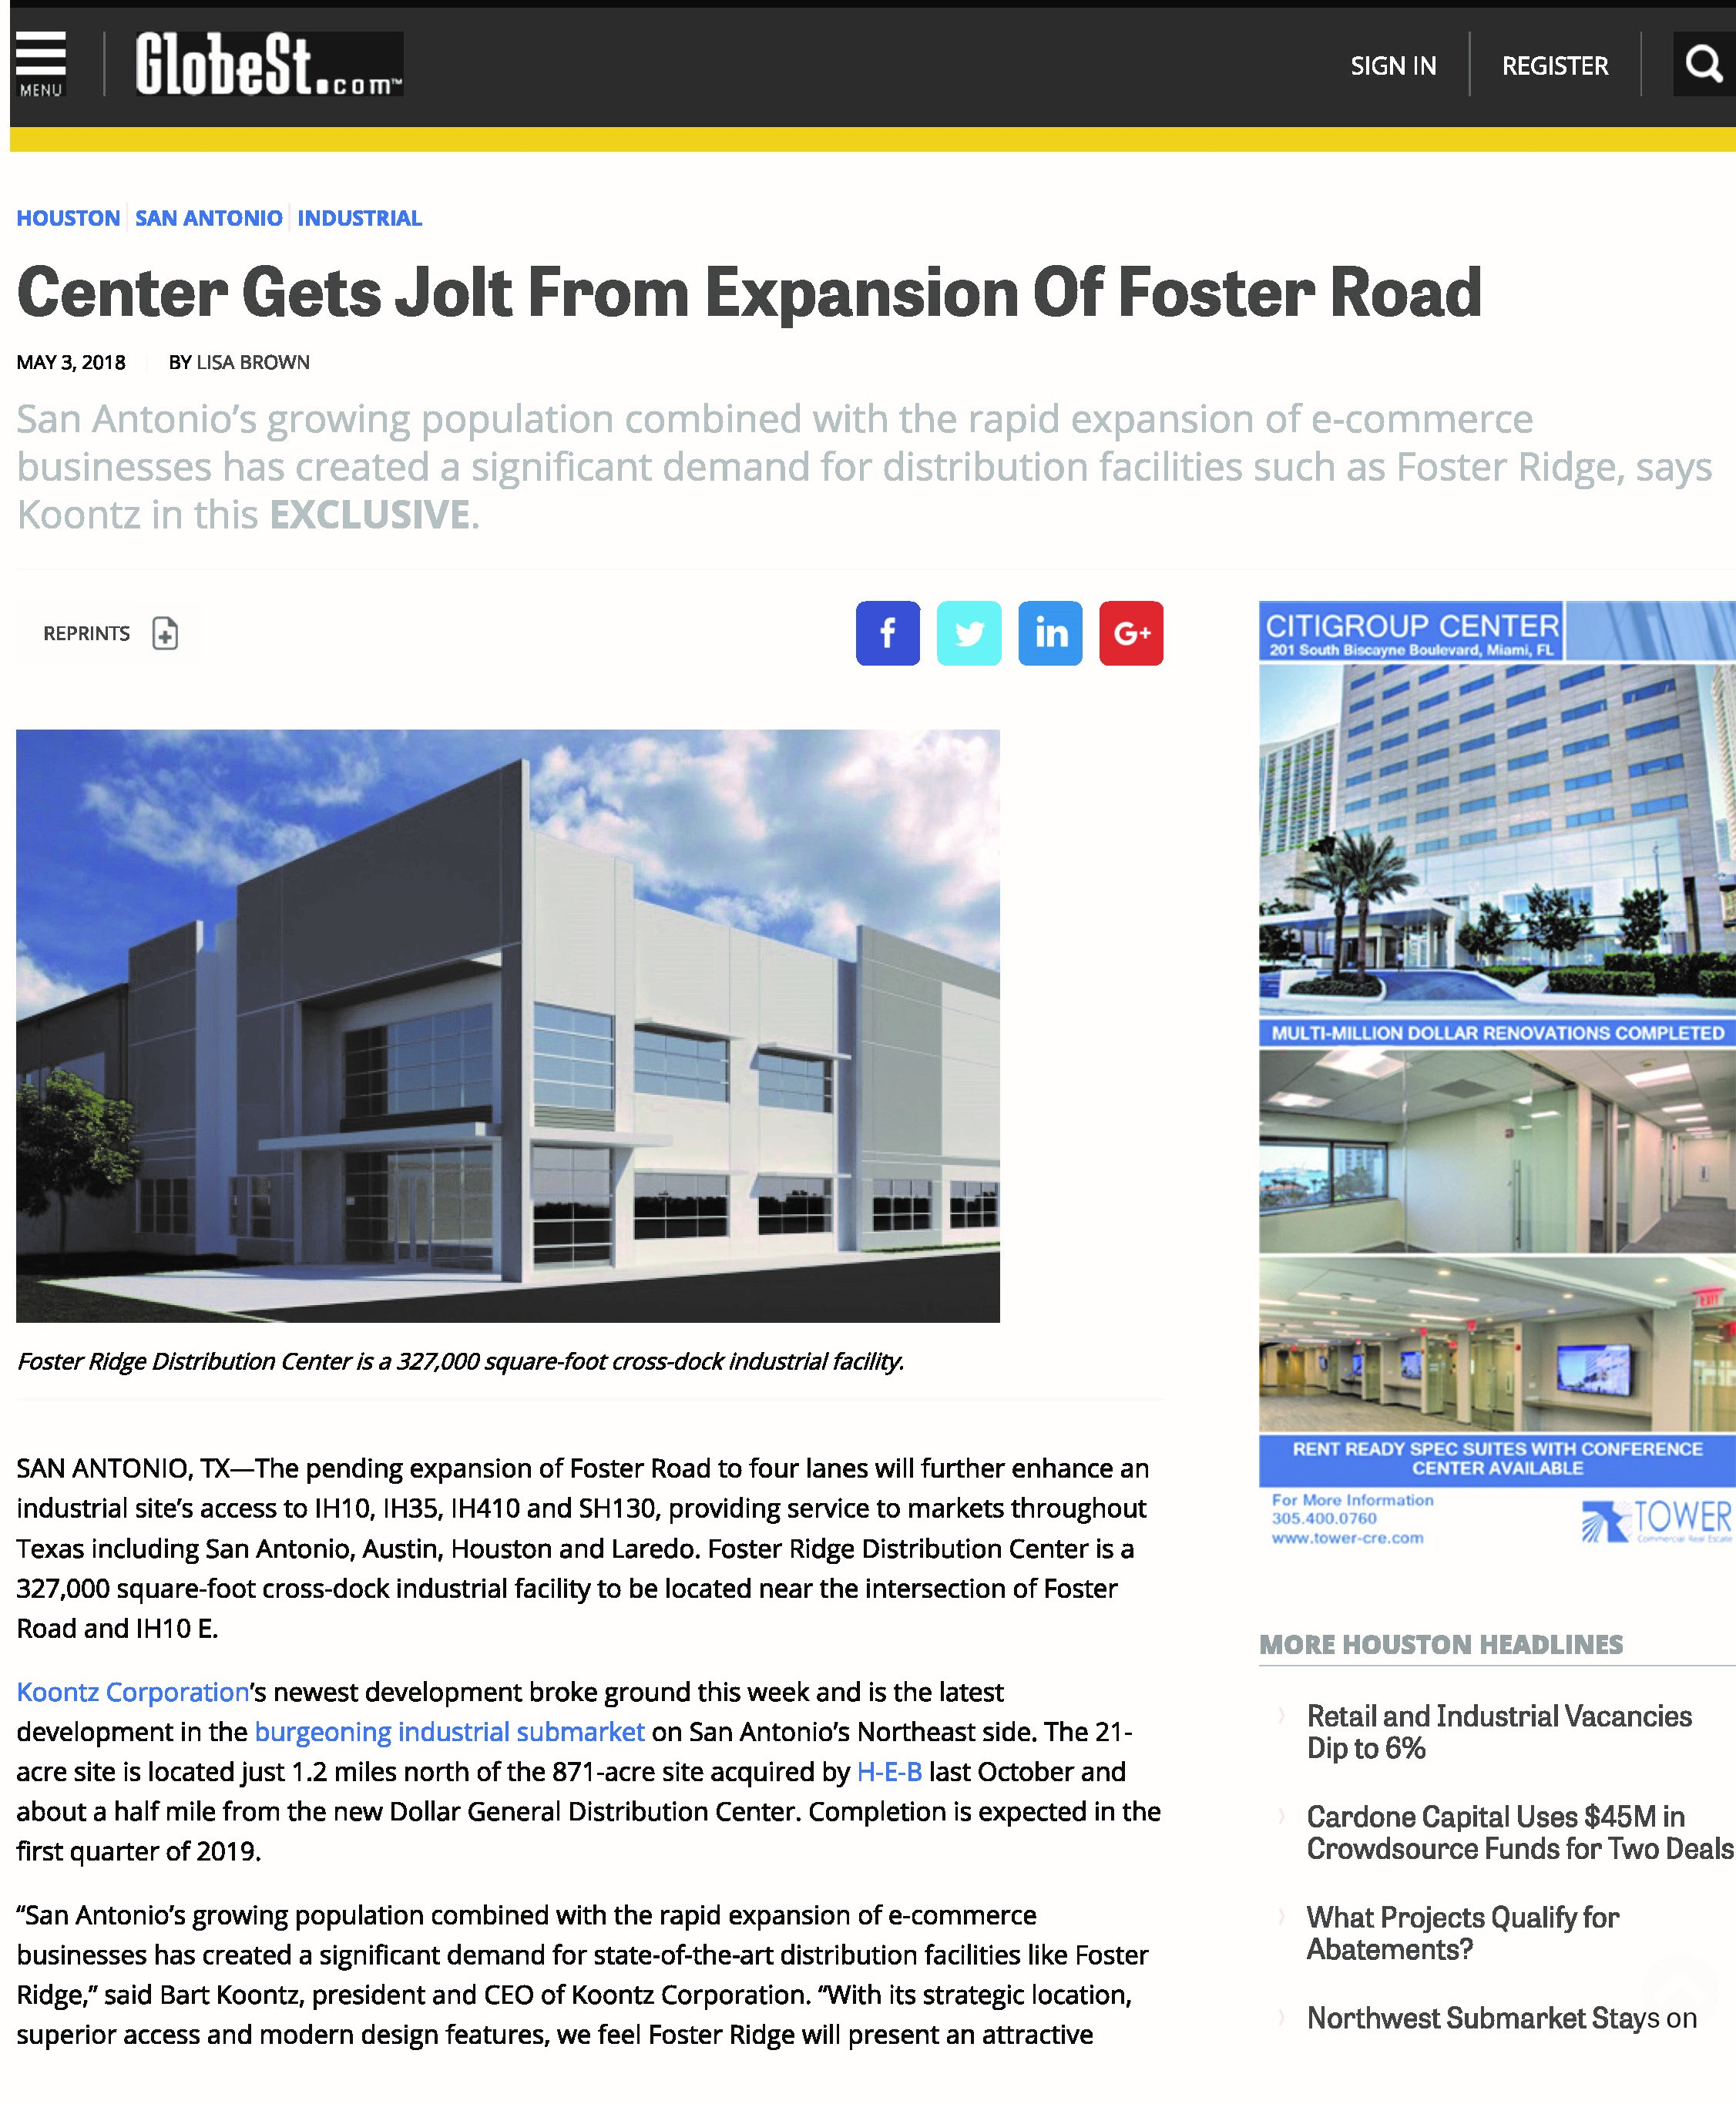 center-gets-jolt-from-expansion-of-foster-road-_-globest_page_1